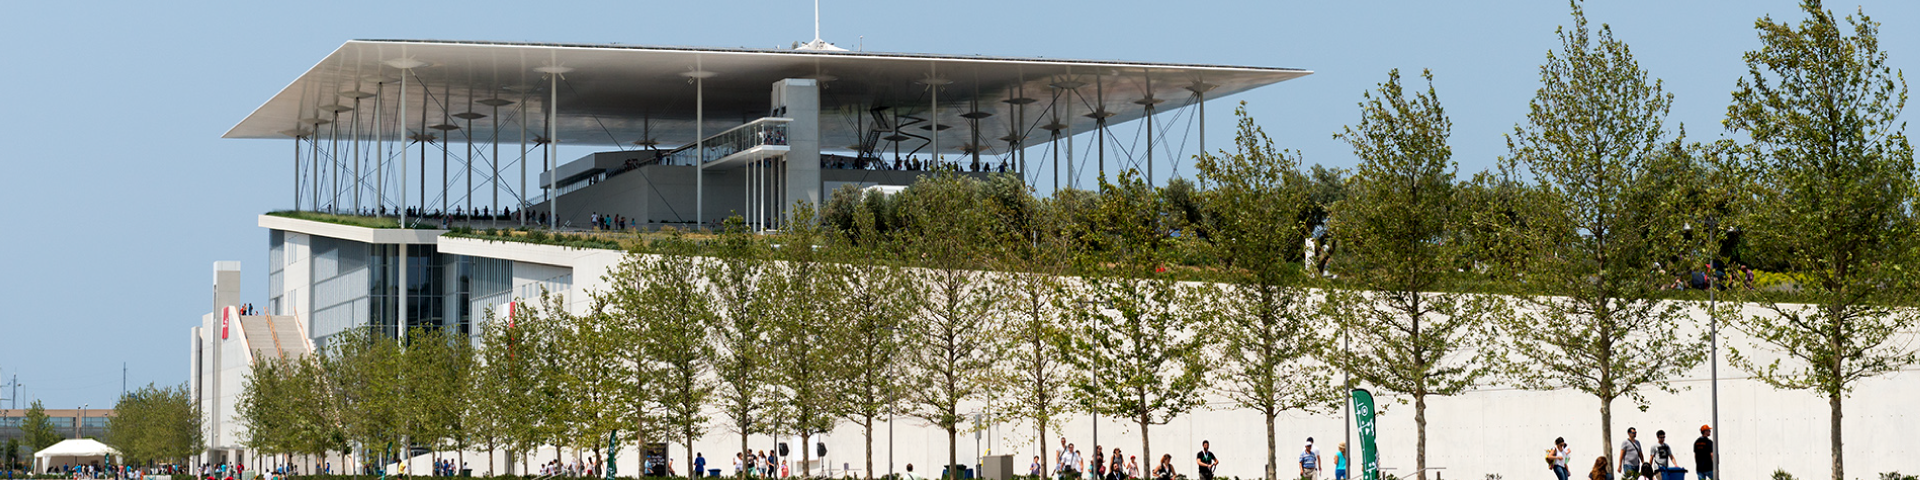 Health and Safety Awards 2020: Golden Prize to the Stavros Niarchos Foundation Cultural Center and Ergonomia - Εικόνα